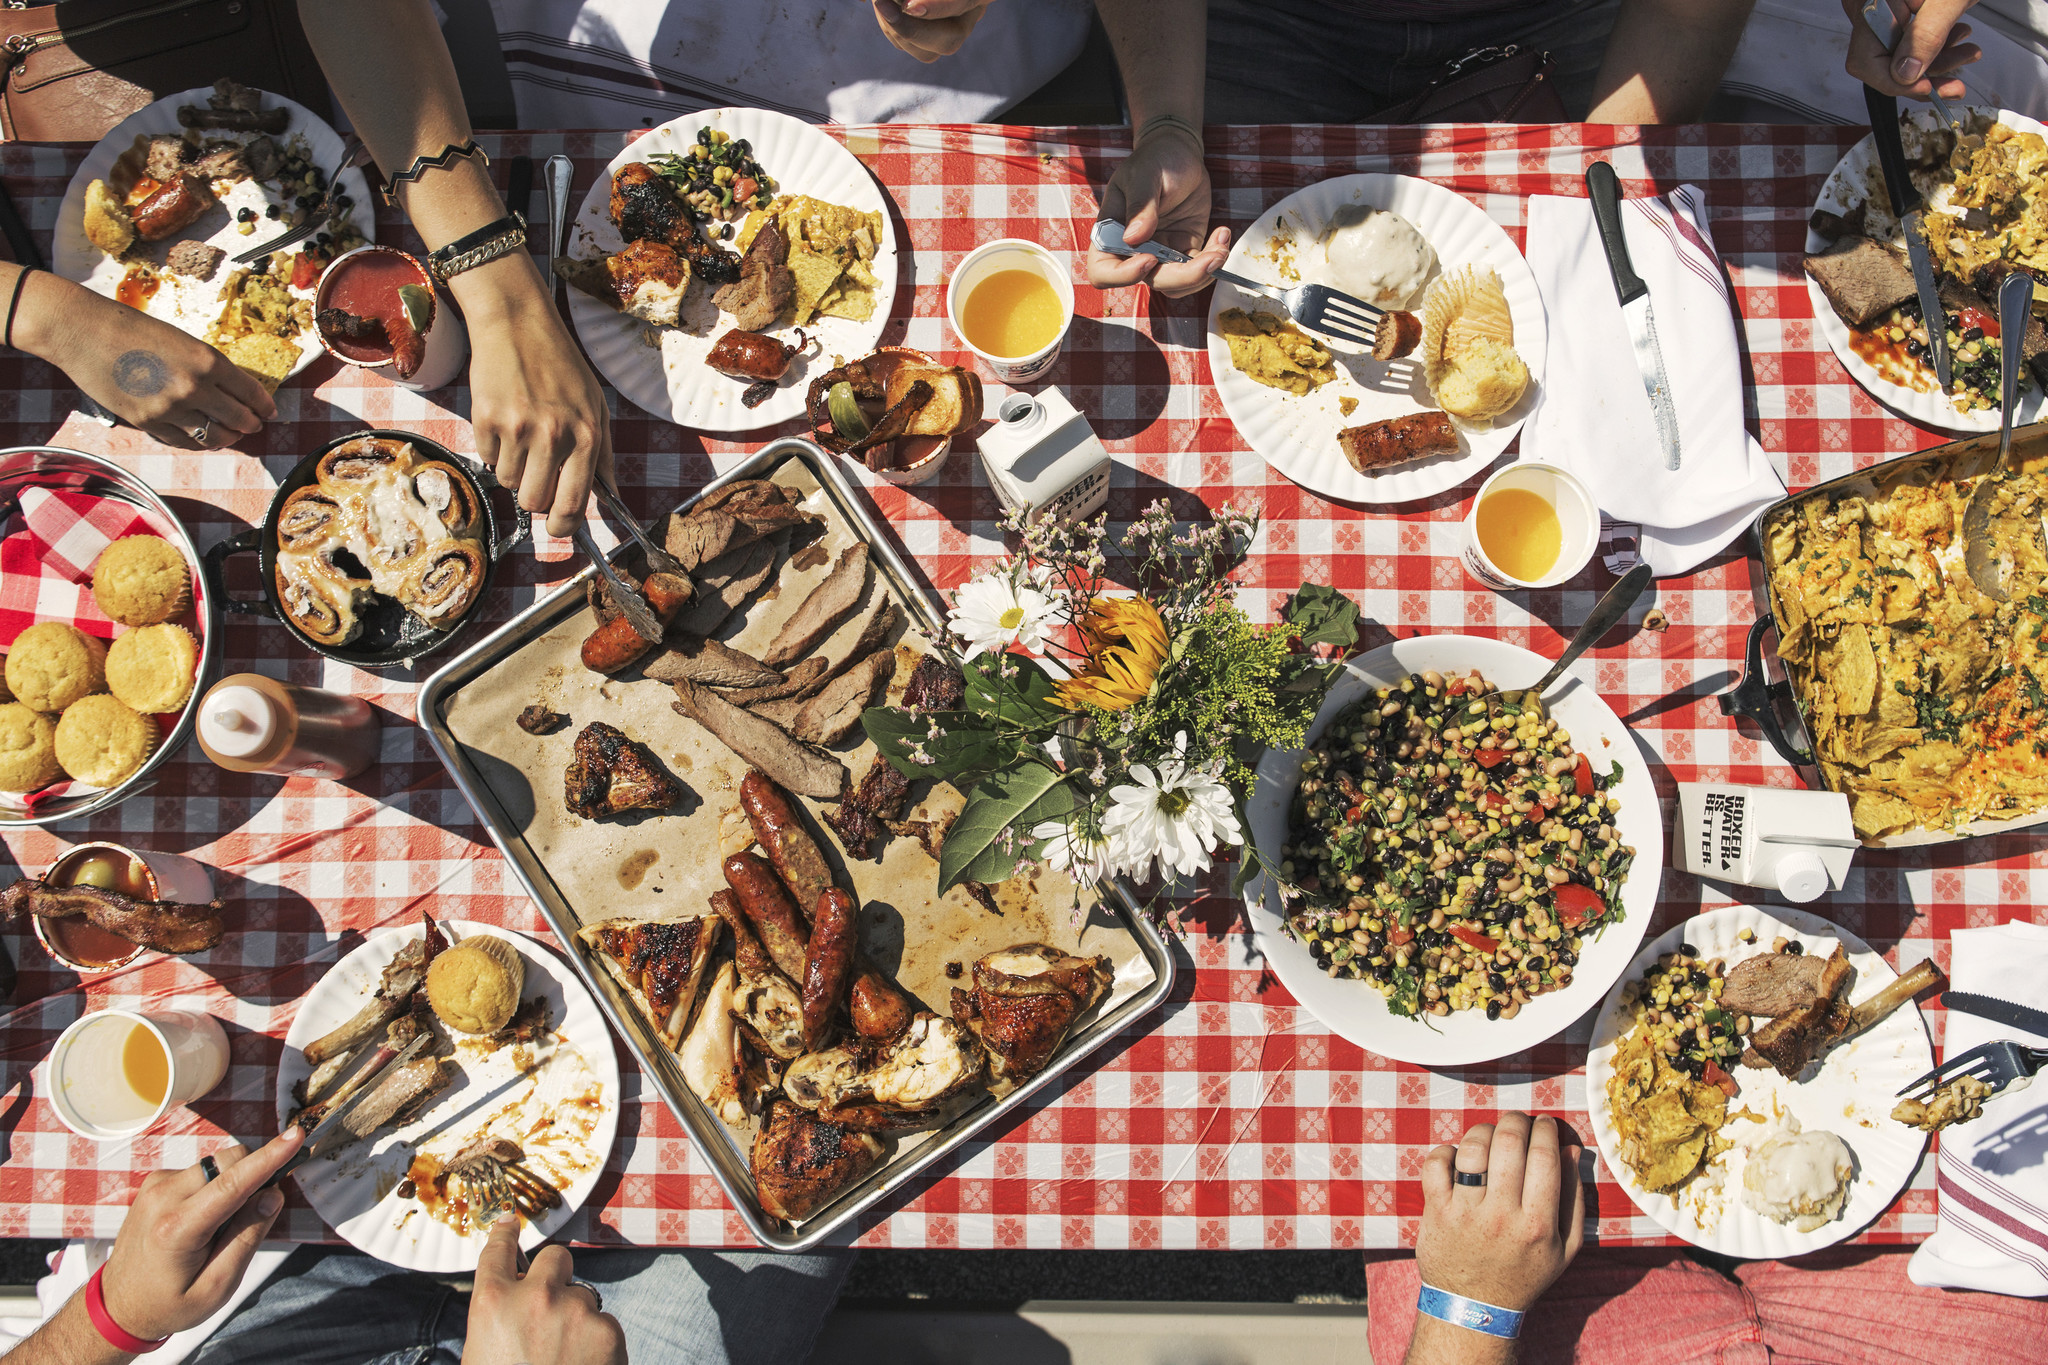 Windy City Smokeout organizers reveal complete menu for the three-day barbecue festival